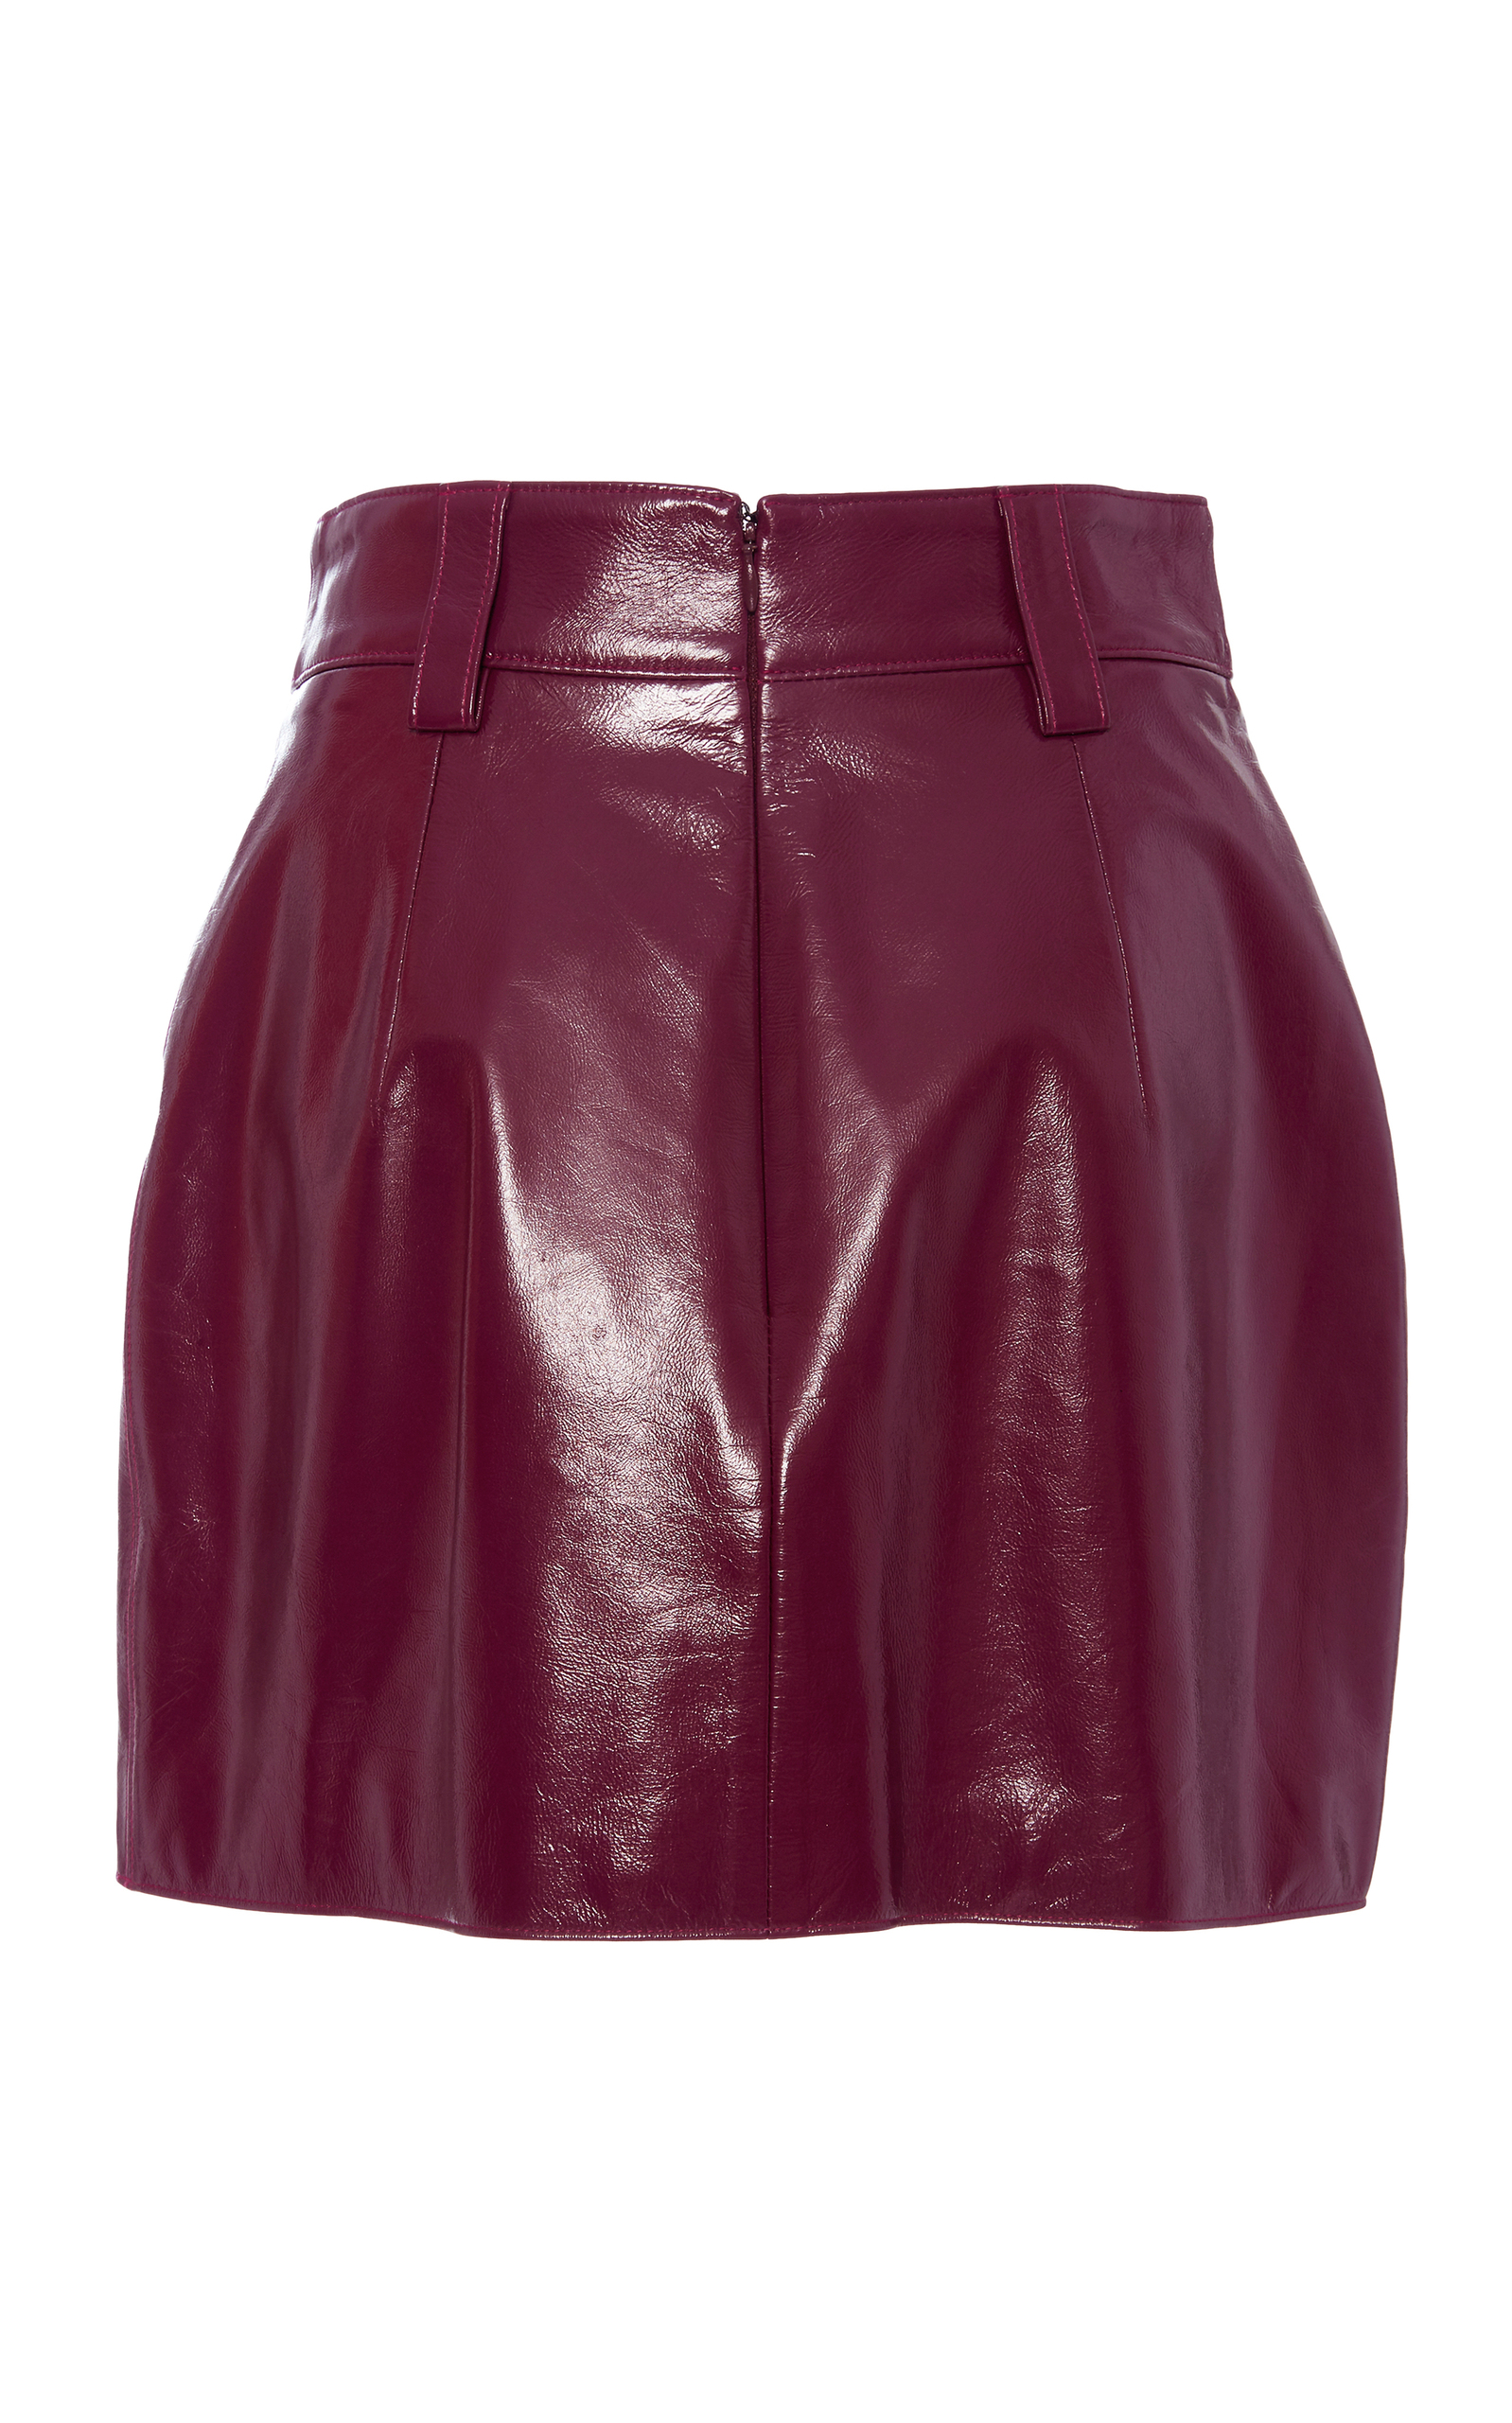 Lola Leather MiniskirtEleanor Balfour